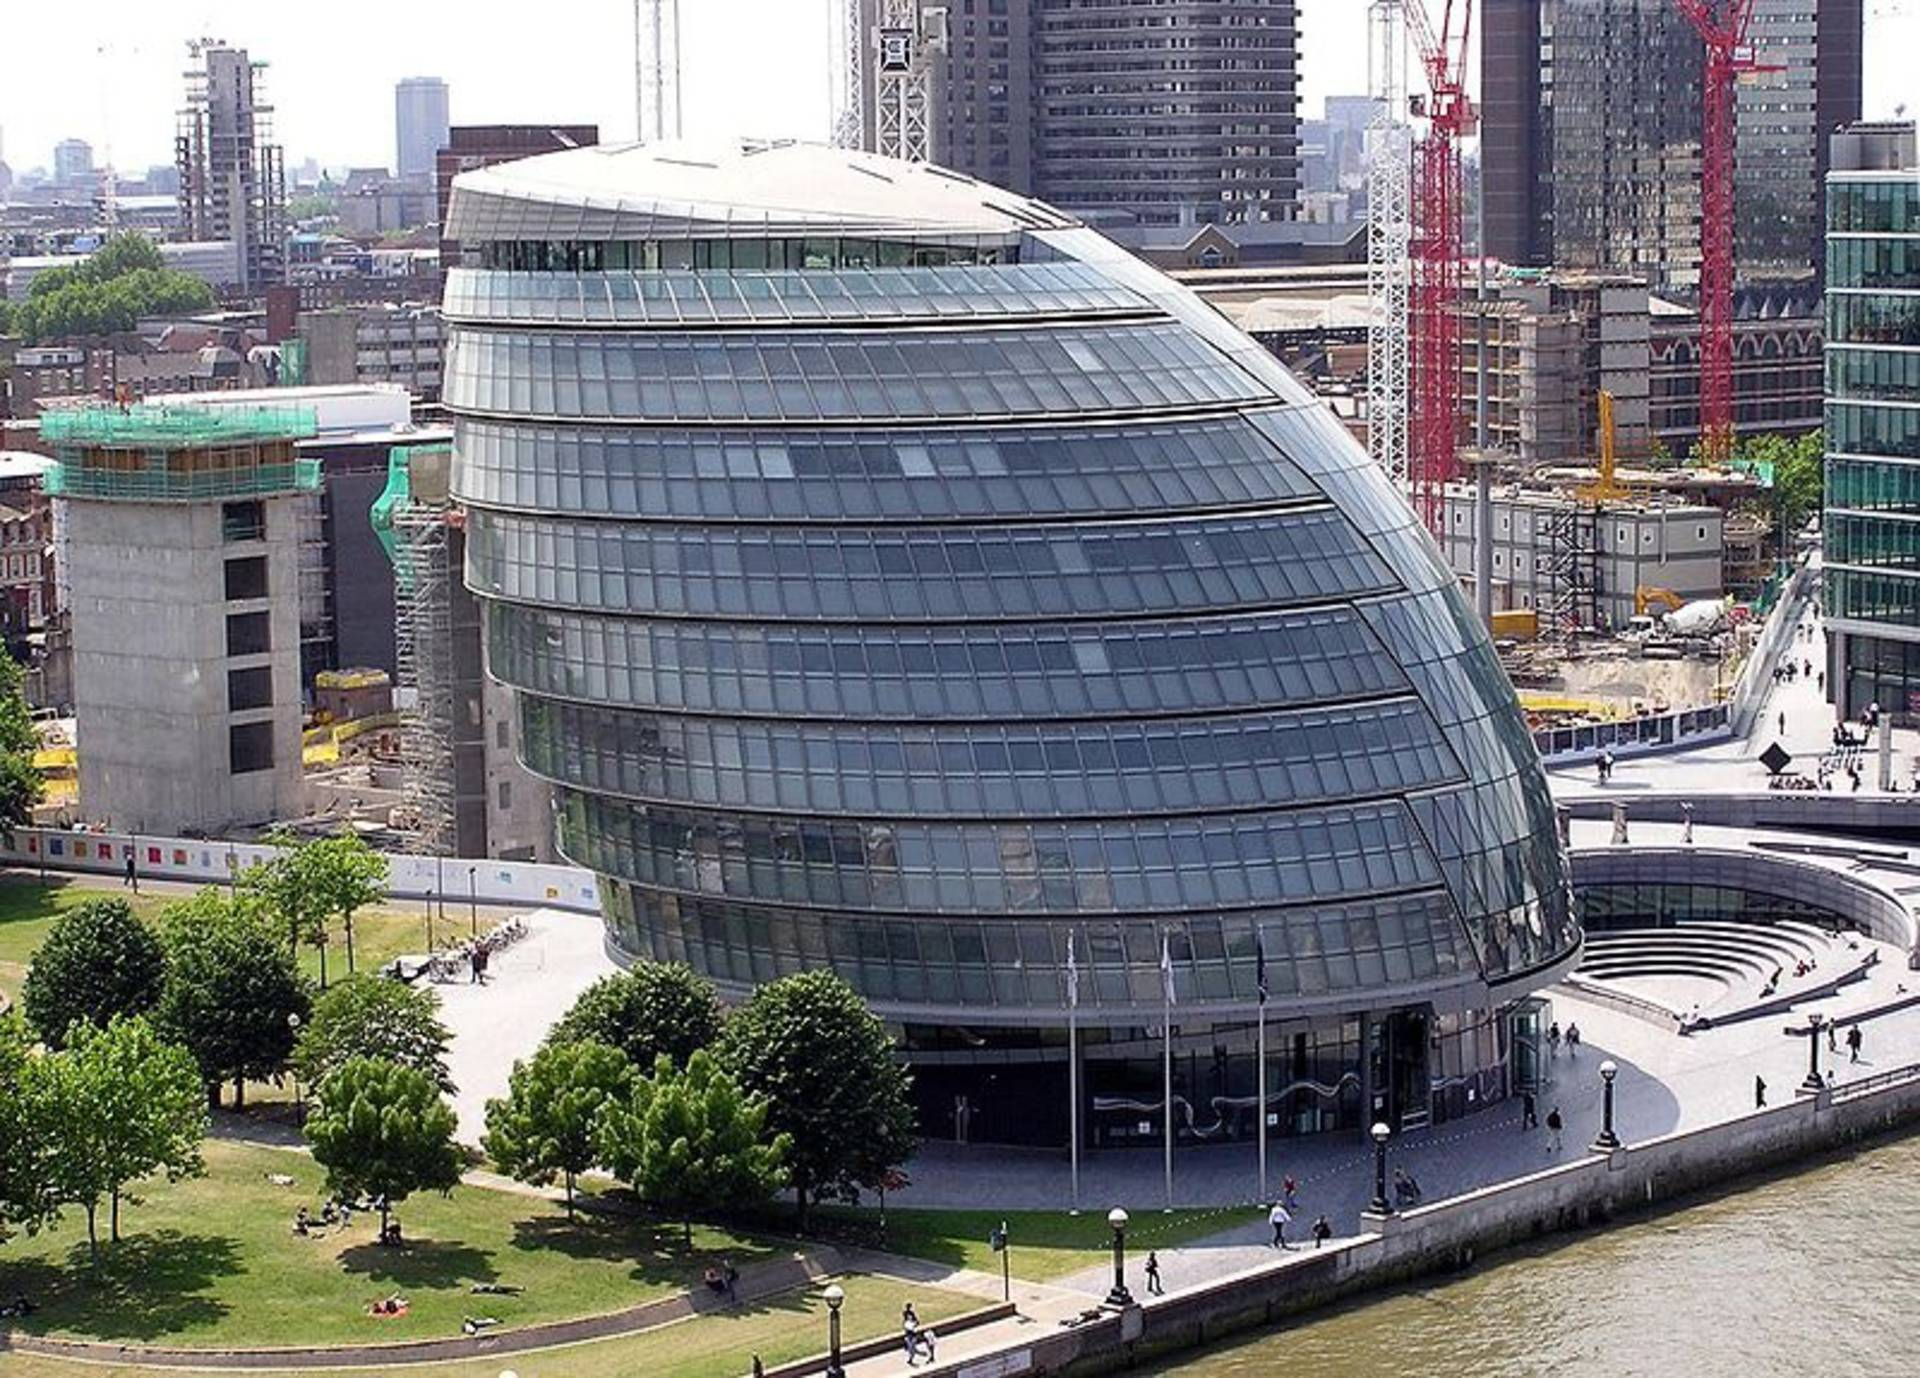 Some Of The World's Most Unusual Curvy Buildings - Home Reviews